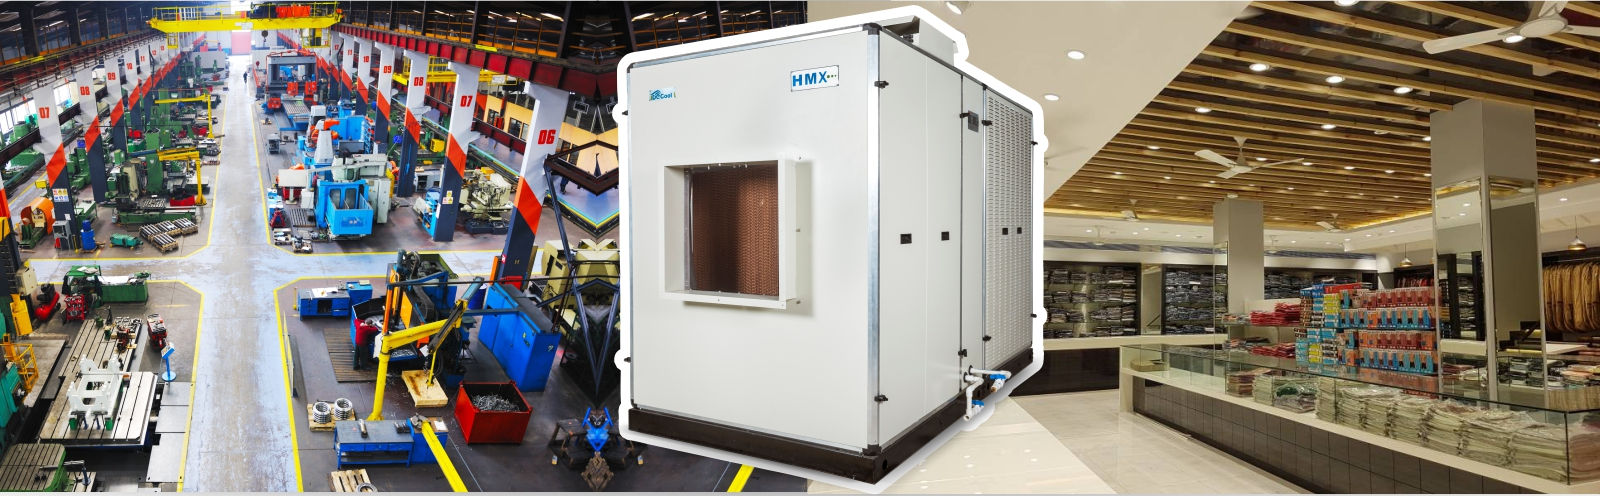 Evaporative Cooling System Suitable for Industrial and Commercial Spaces